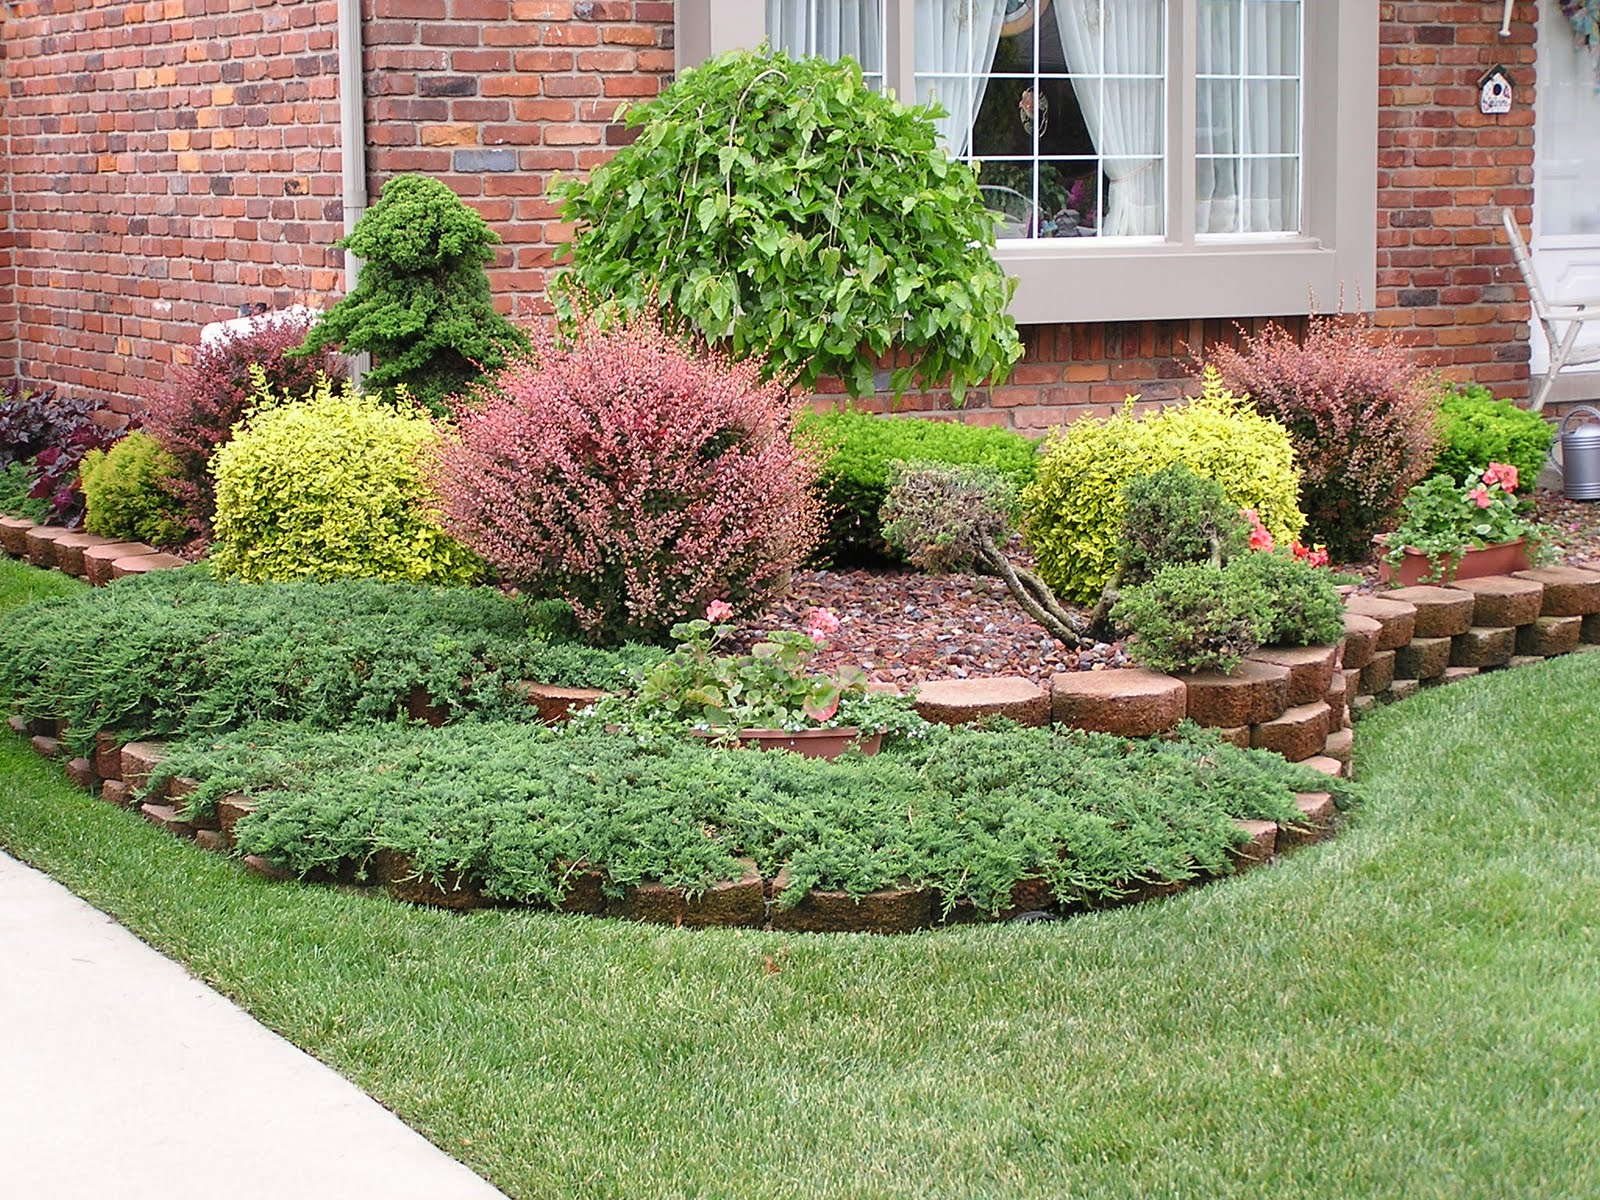 D I Y D E S I G N Curb Appeal Part 2 The Landscaping